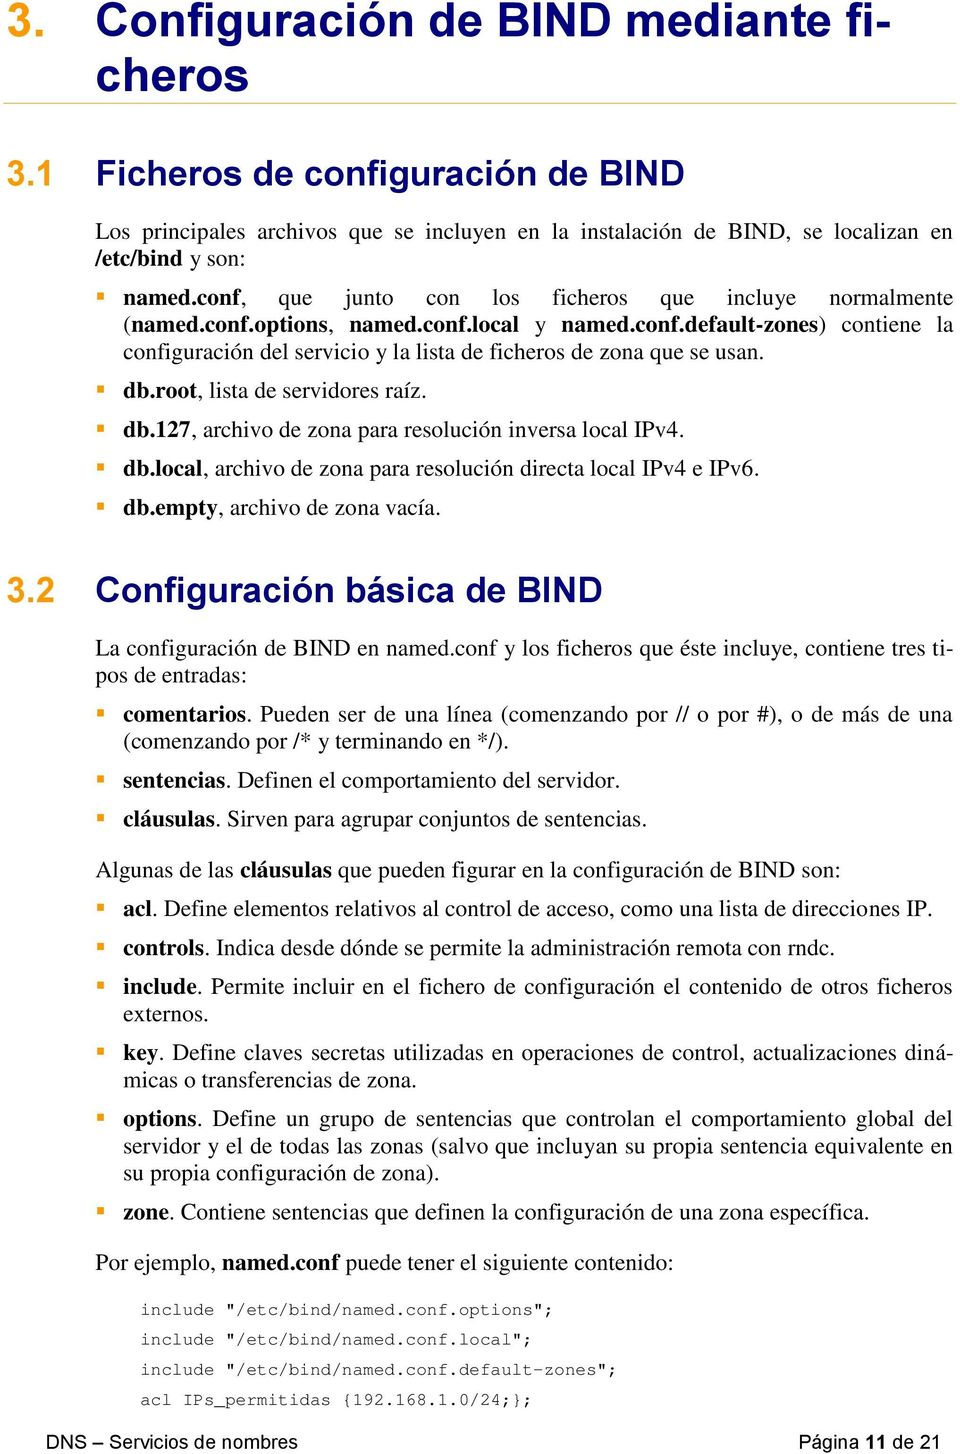 db.root, lista de servidores raíz. db.127, archivo de zona para resolución inversa local IPv4. db.local, archivo de zona para resolución directa local IPv4 e IPv6. db.empty, archivo de zona vacía. 3.